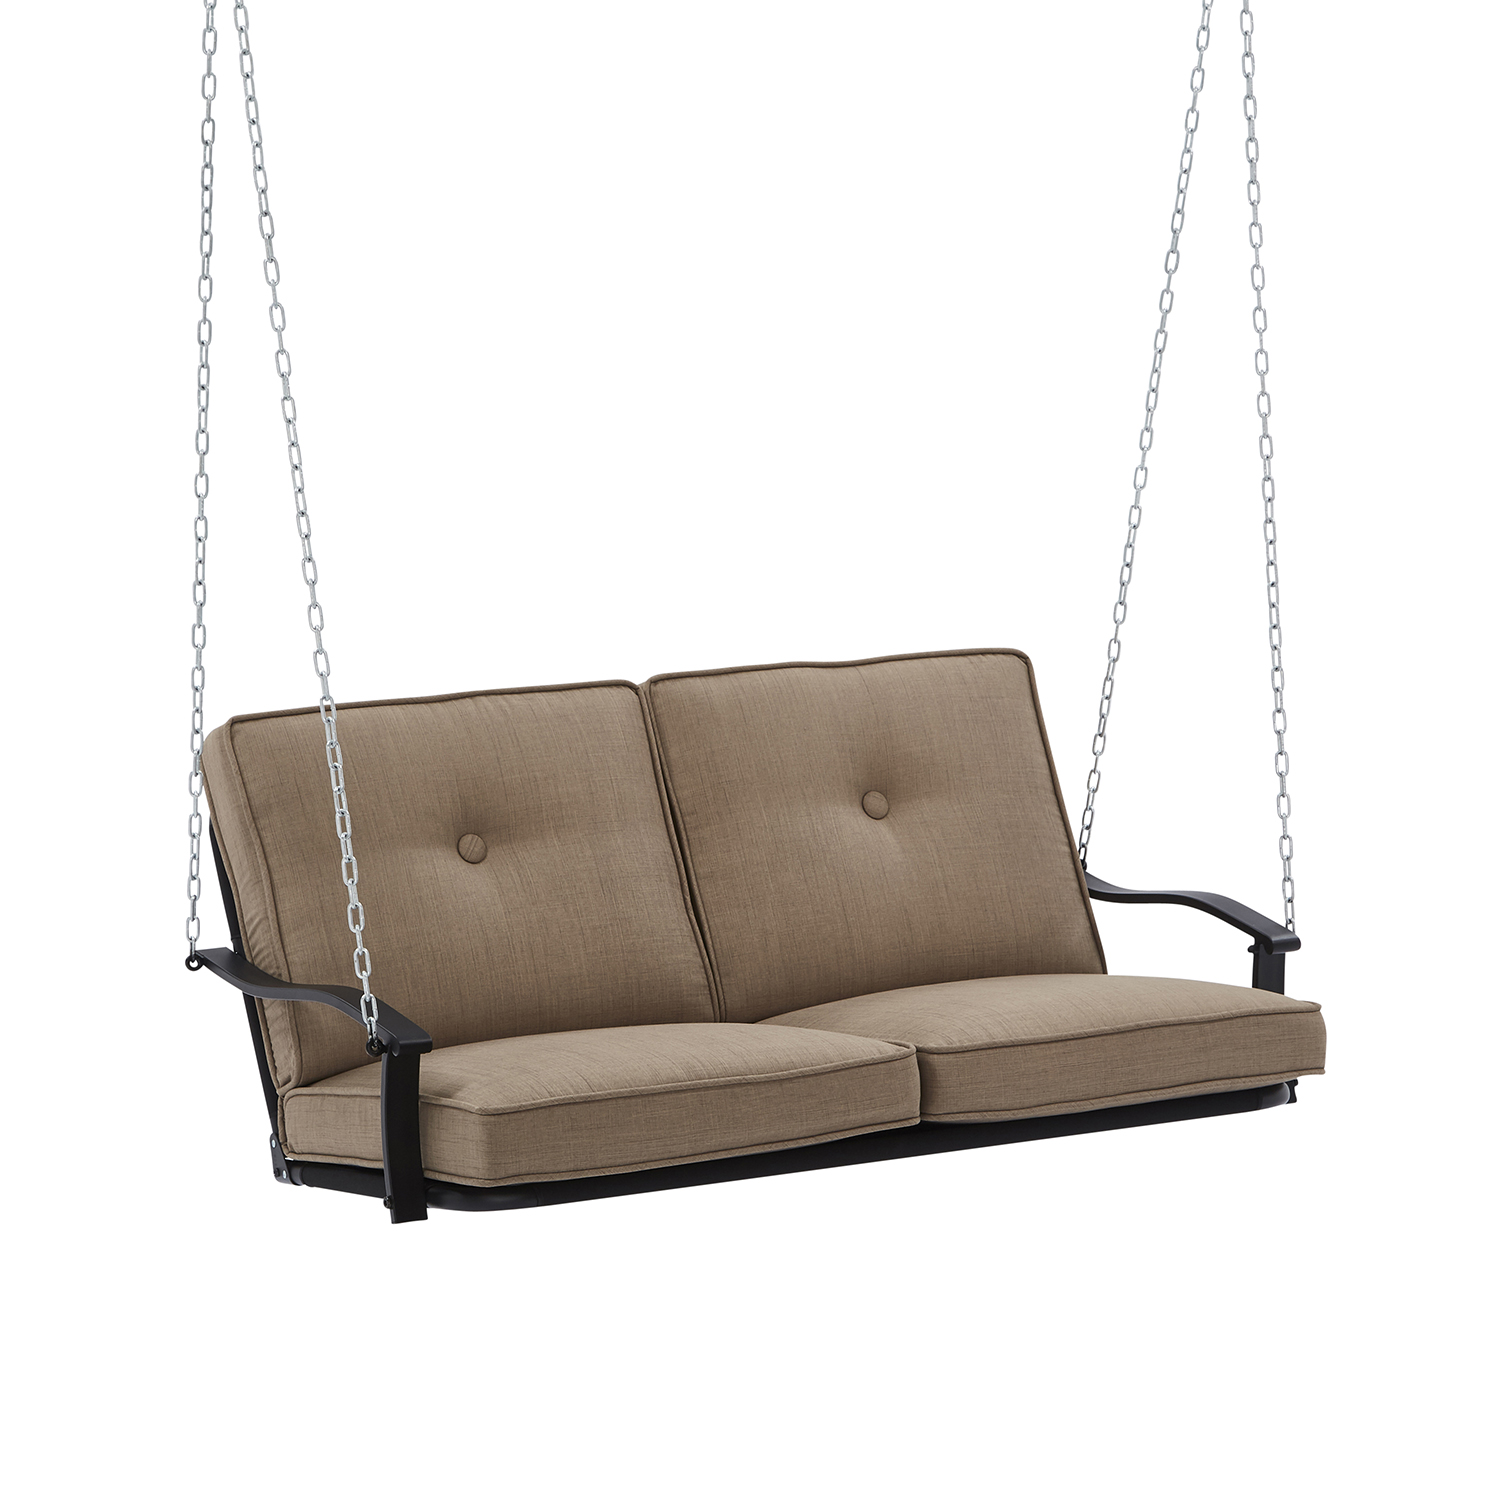 Outdoor Patio Deck Mainstays Belden Park 2 Seat Cushioned Porch Swing Sofa 2